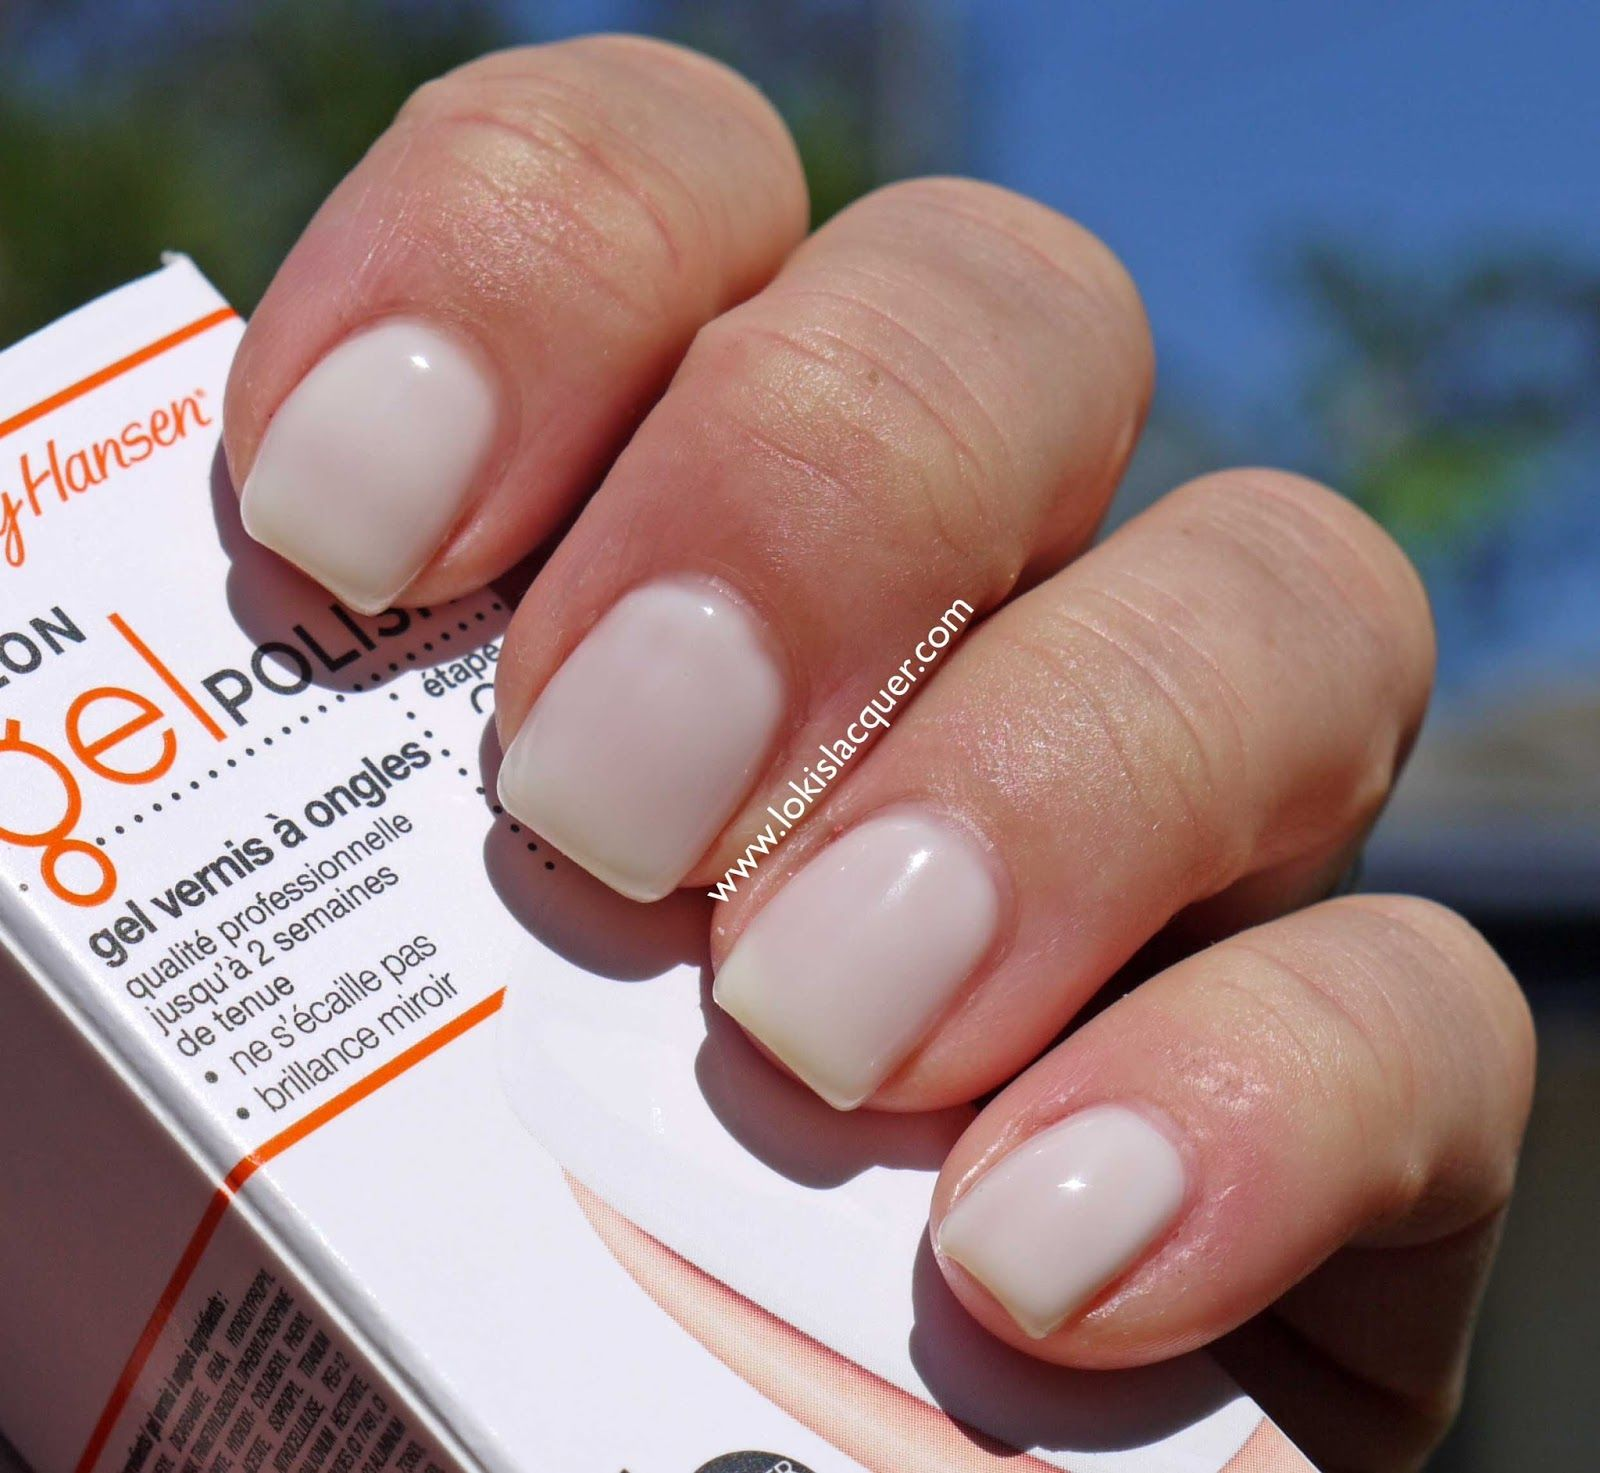 Sally Hansen Salon Gel polish White away | Sally Hansen Gel Polish ...